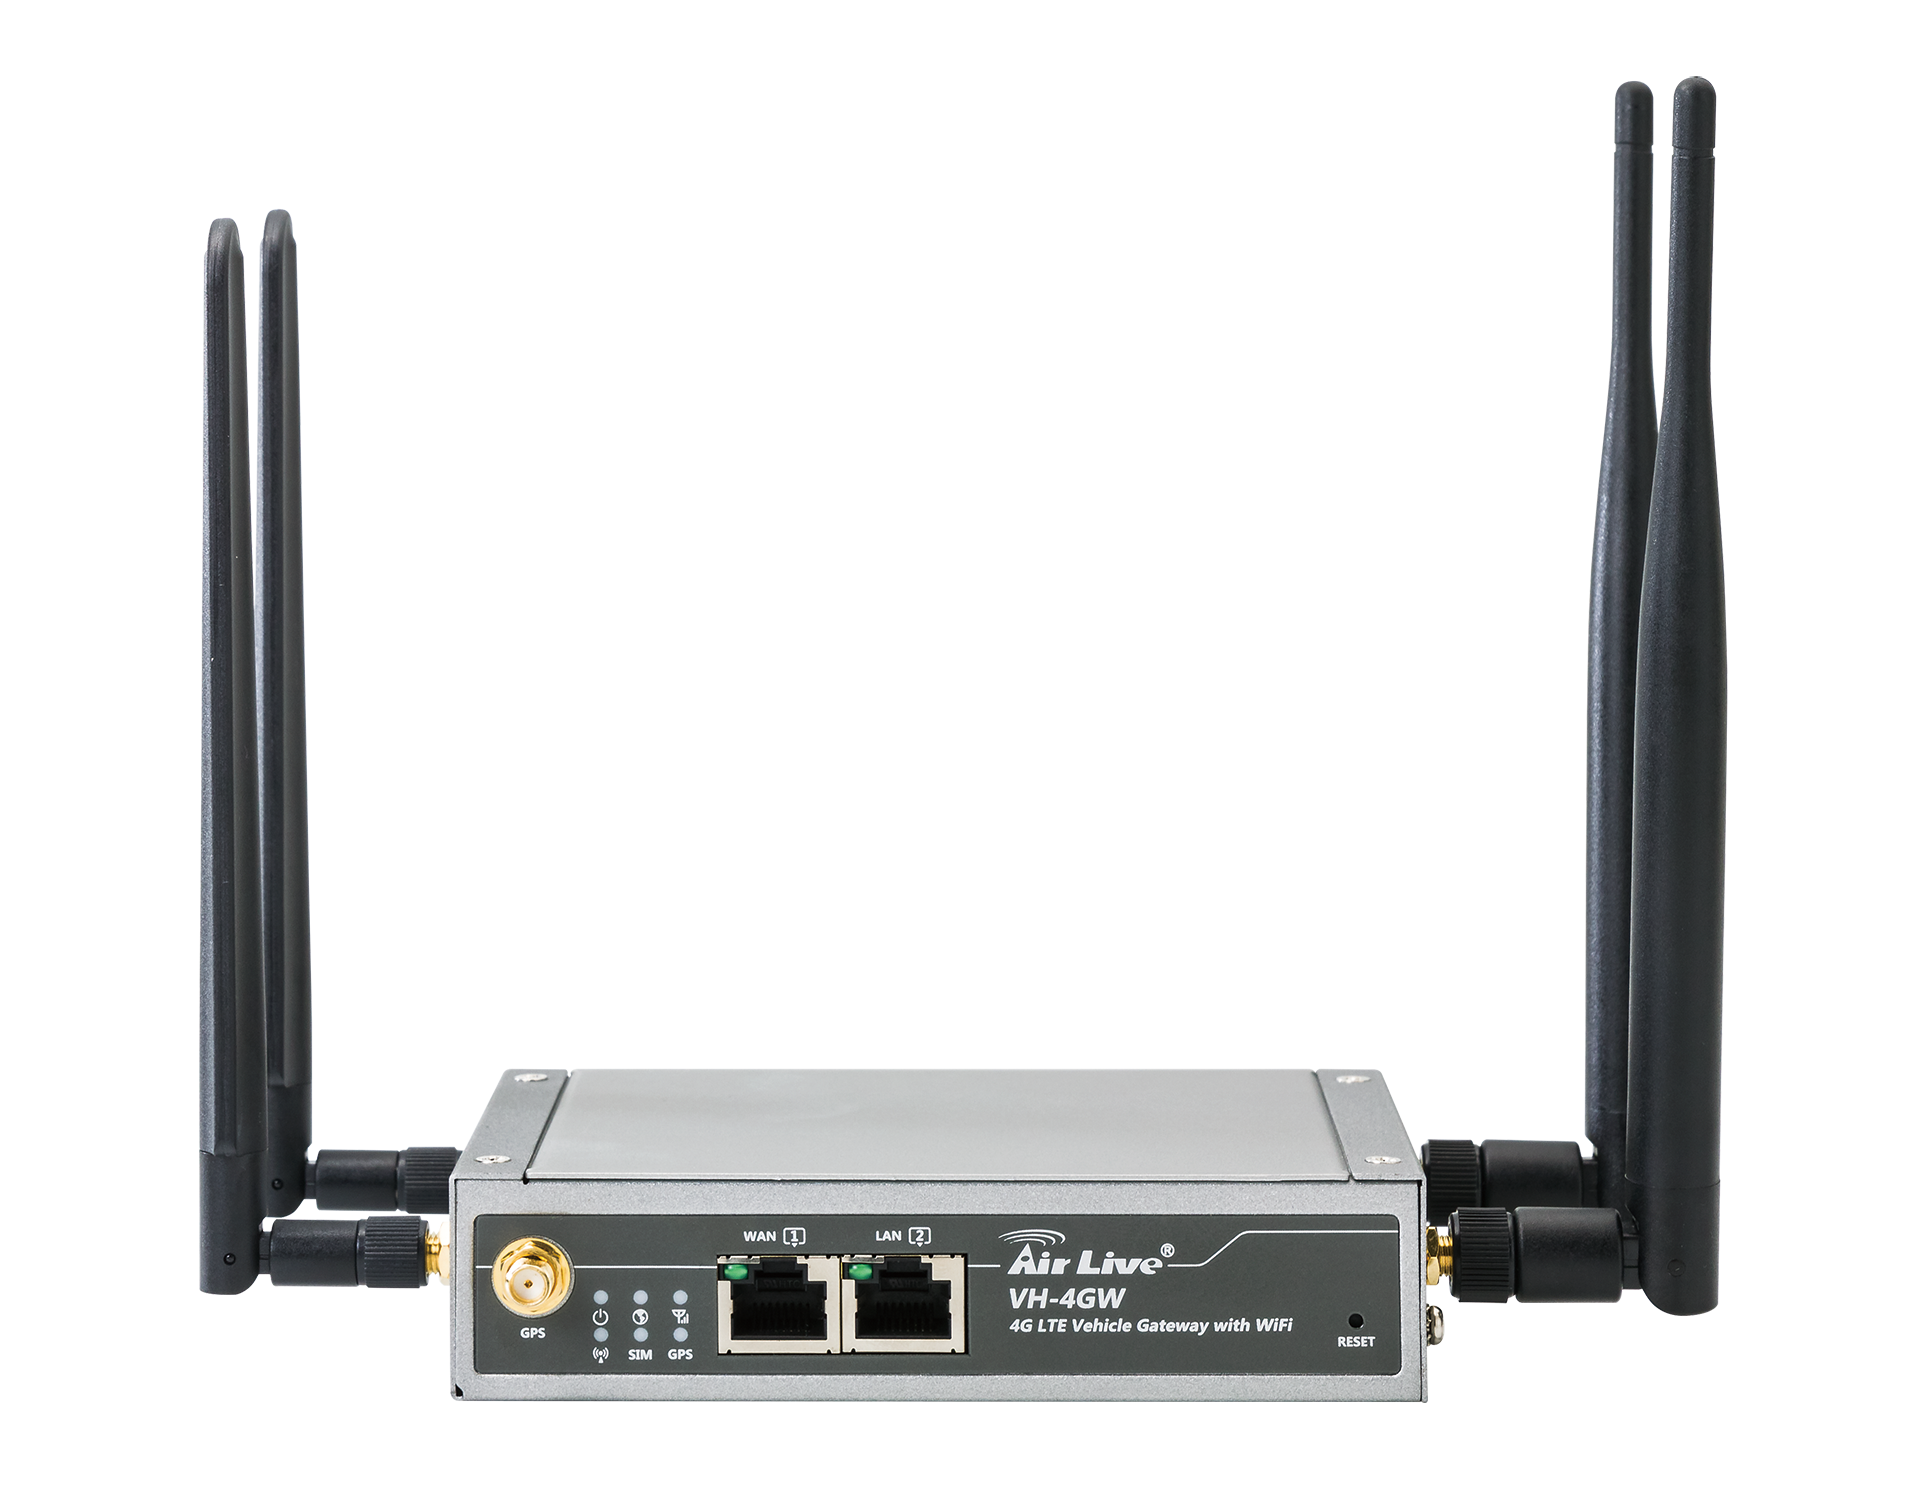 4G LTE Gateway_Product Photo_Marketing | AirLive (歐立科技)